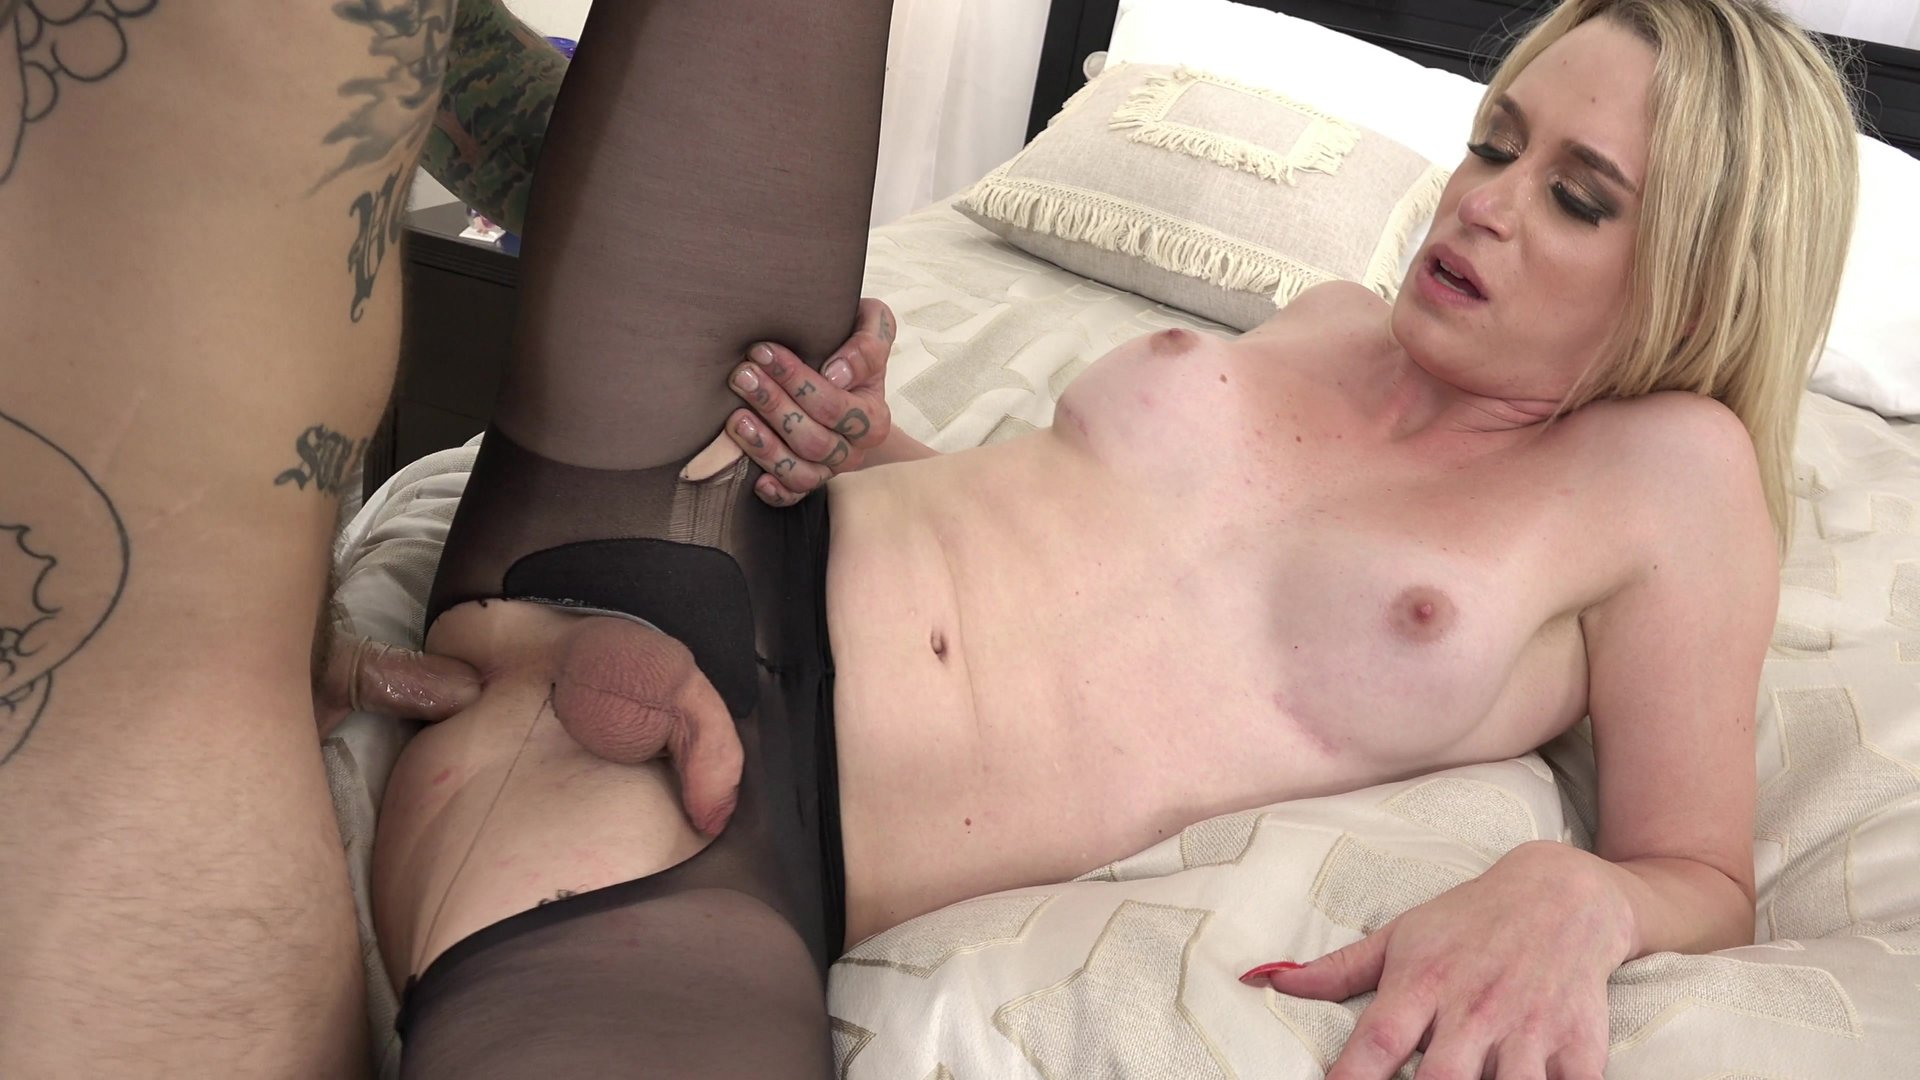 free video preview image from tranny hoes in panty hose